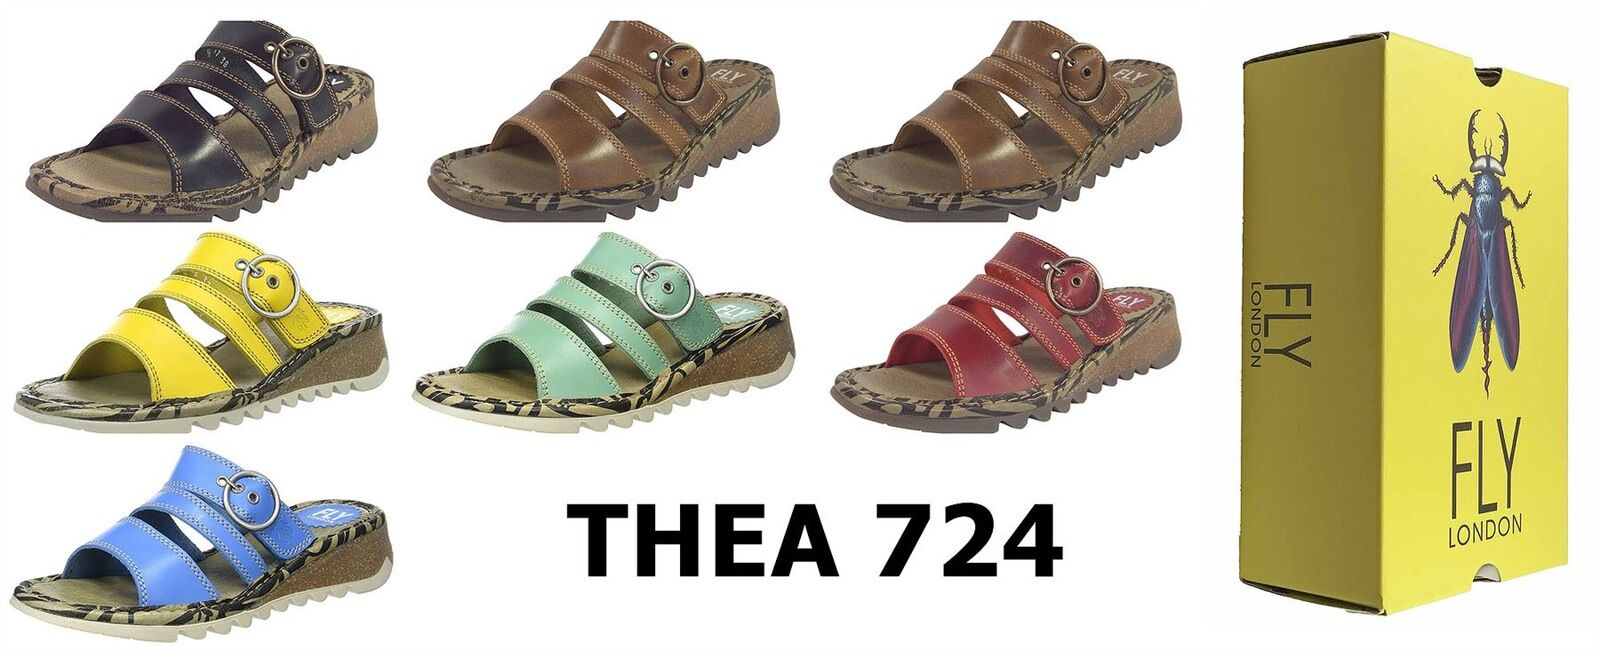 Fly London Ladies Thea724 Brooklyn Leather Strap Comfy THEA Sandals